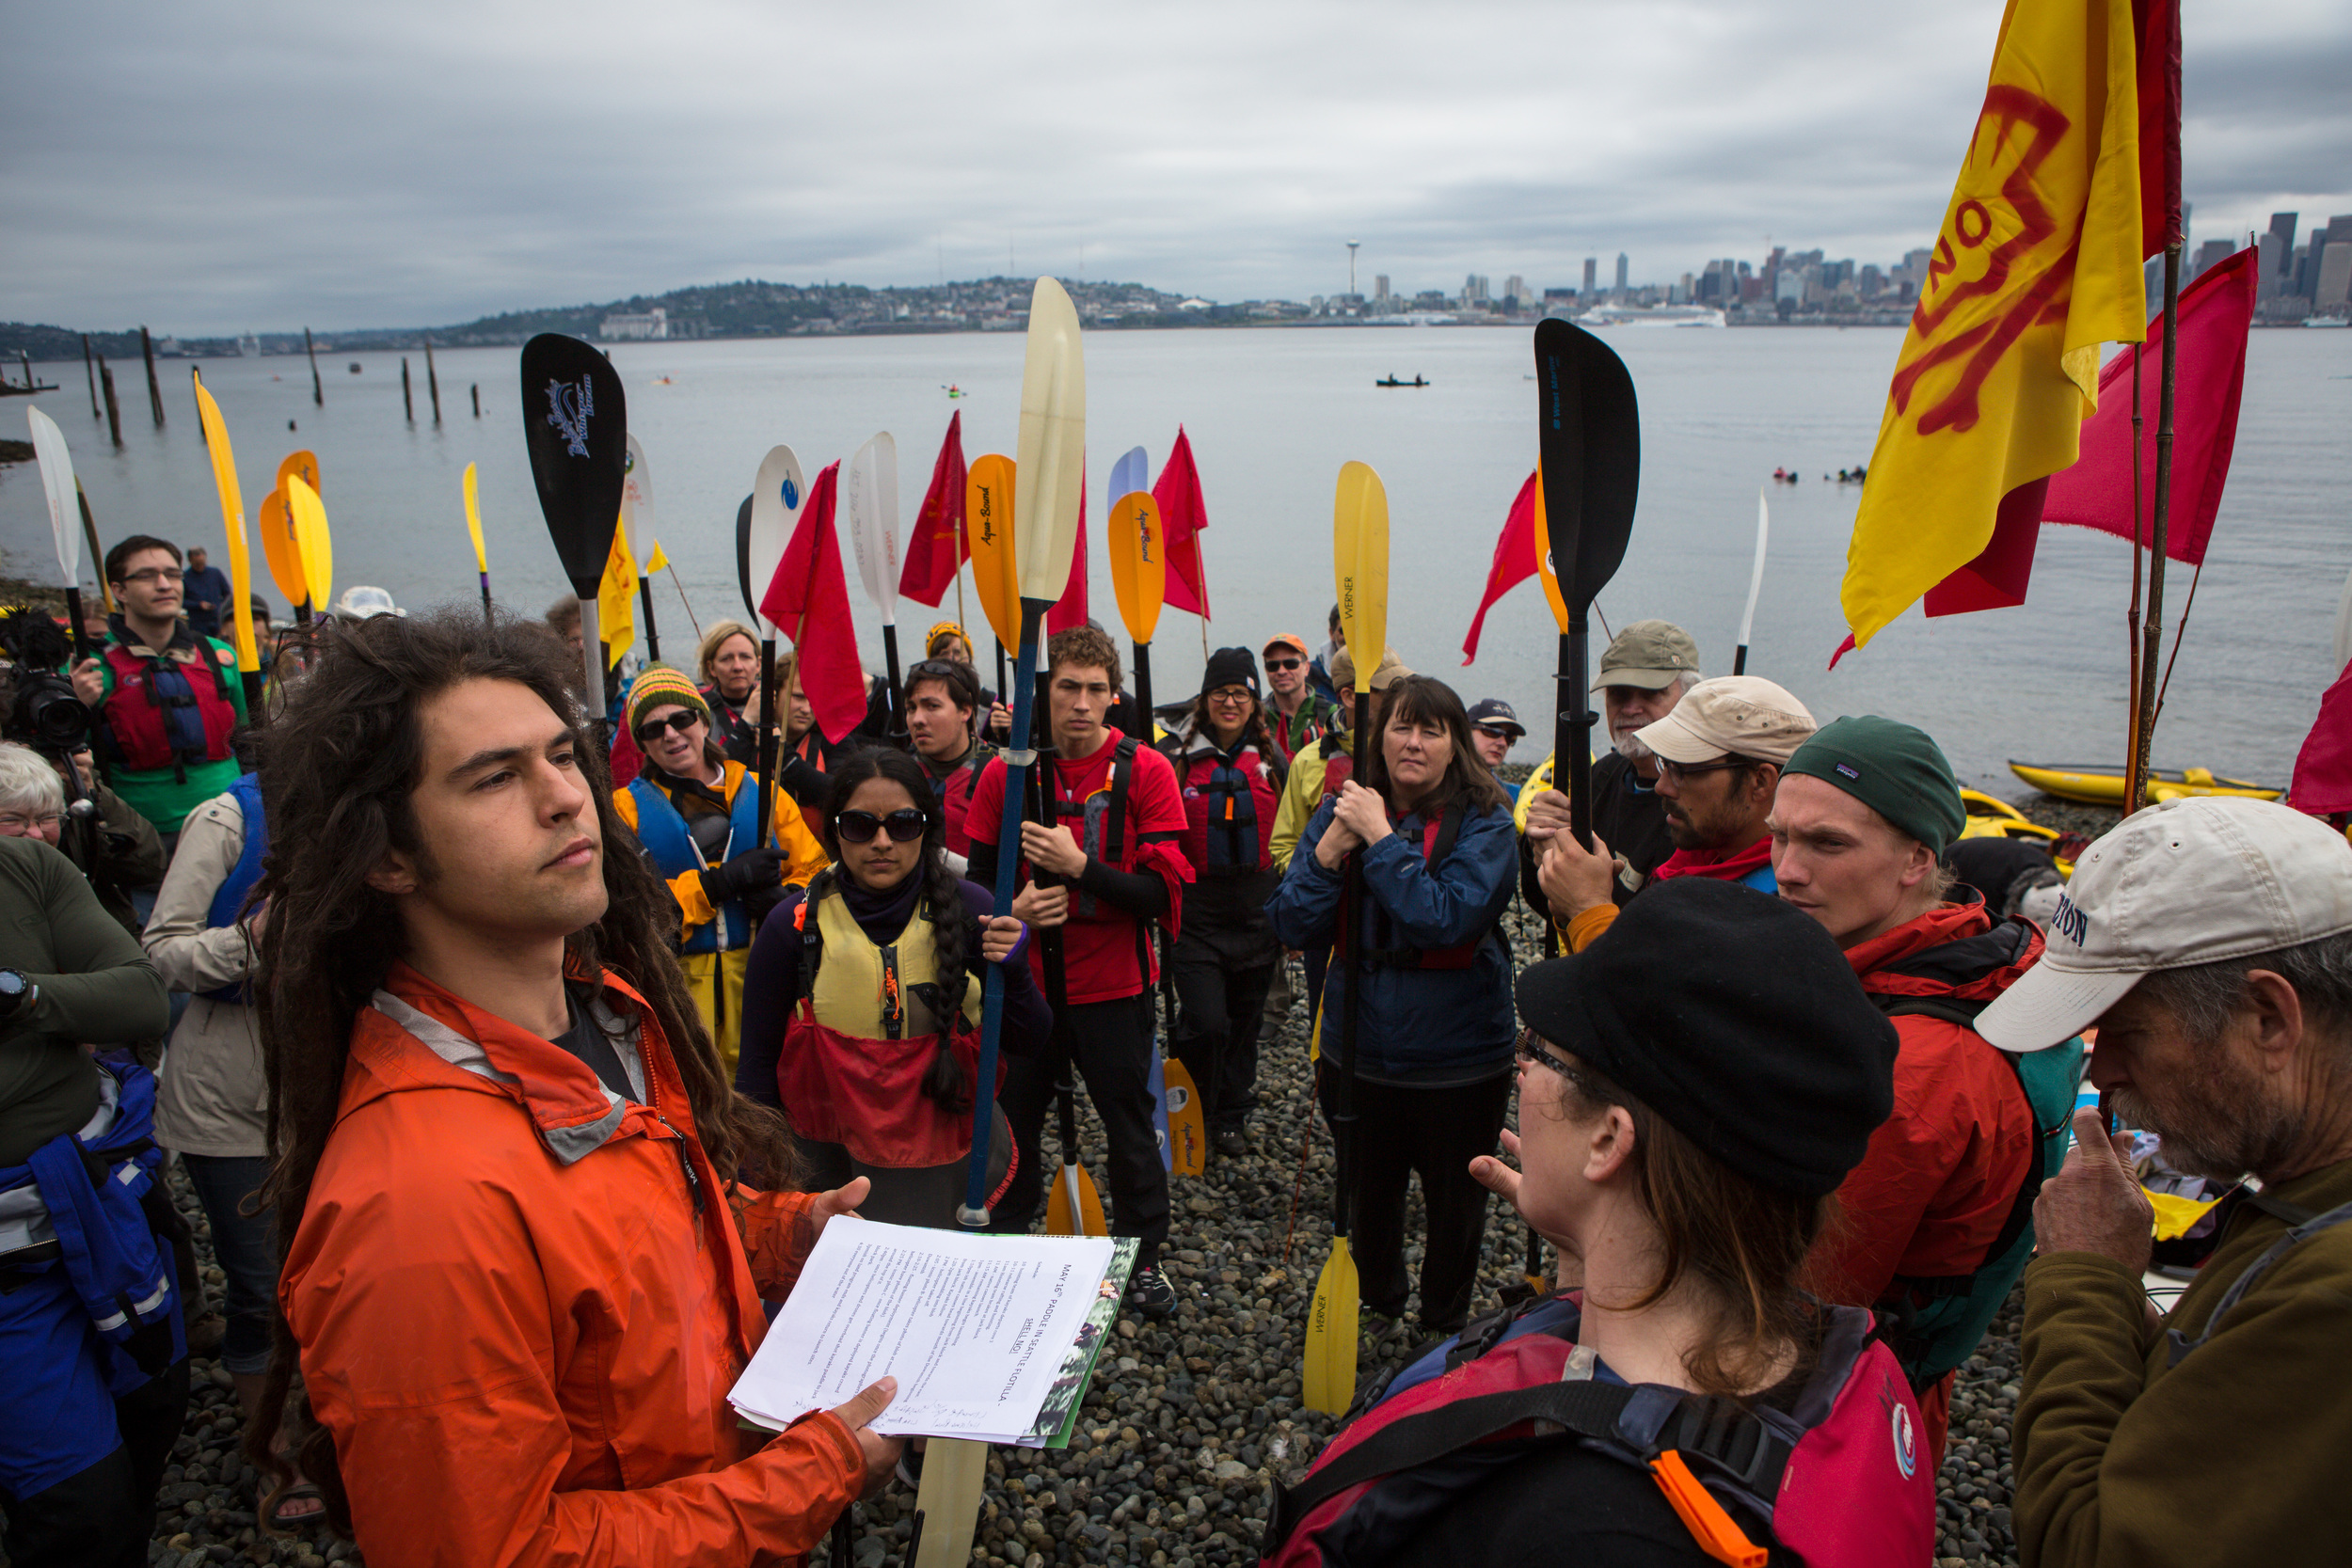 Kayaktivists prepare to take to the water during protest against drilling in the Arctic and the Port of Seattle being used as a port for the Shell Oil drilling rig Polar Pioneer. The protest flotilla drew many paddlers to show their displeasure with the rig being moored in Seattle. Photographed on Saturday, May 16, 2015.